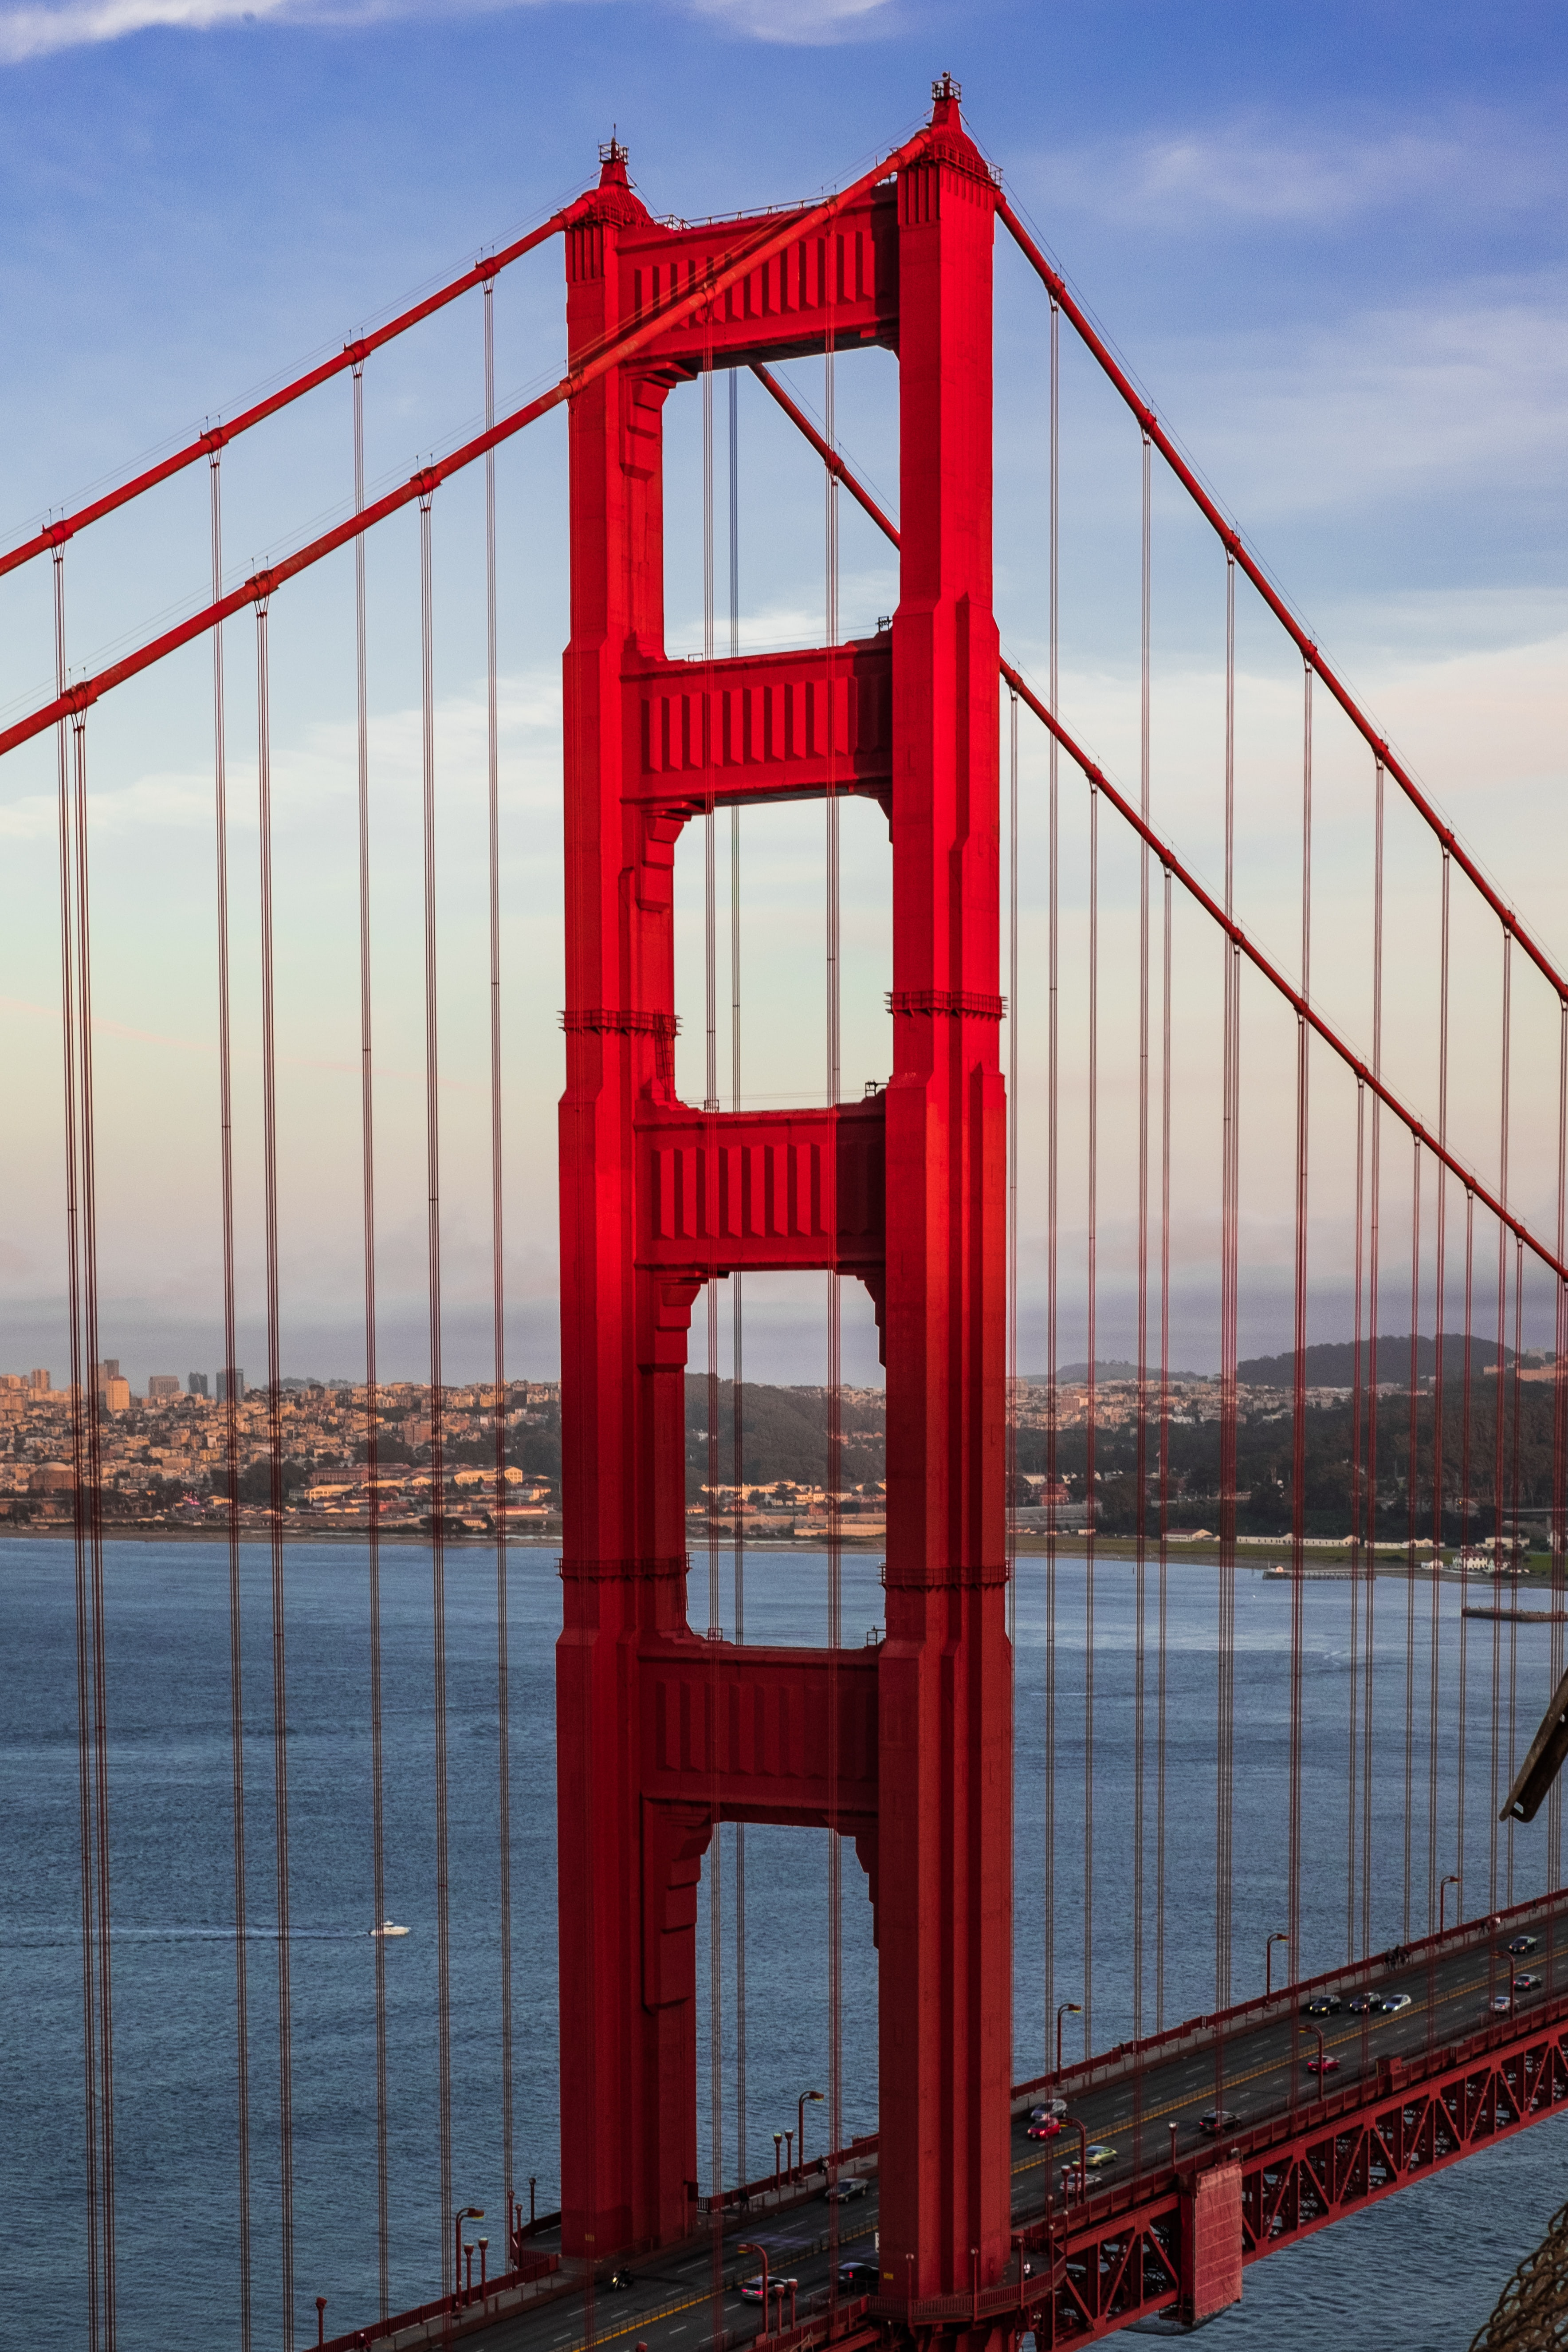 The Golden Gate Bridge in San Francisco in brilliant red with the coast in the background